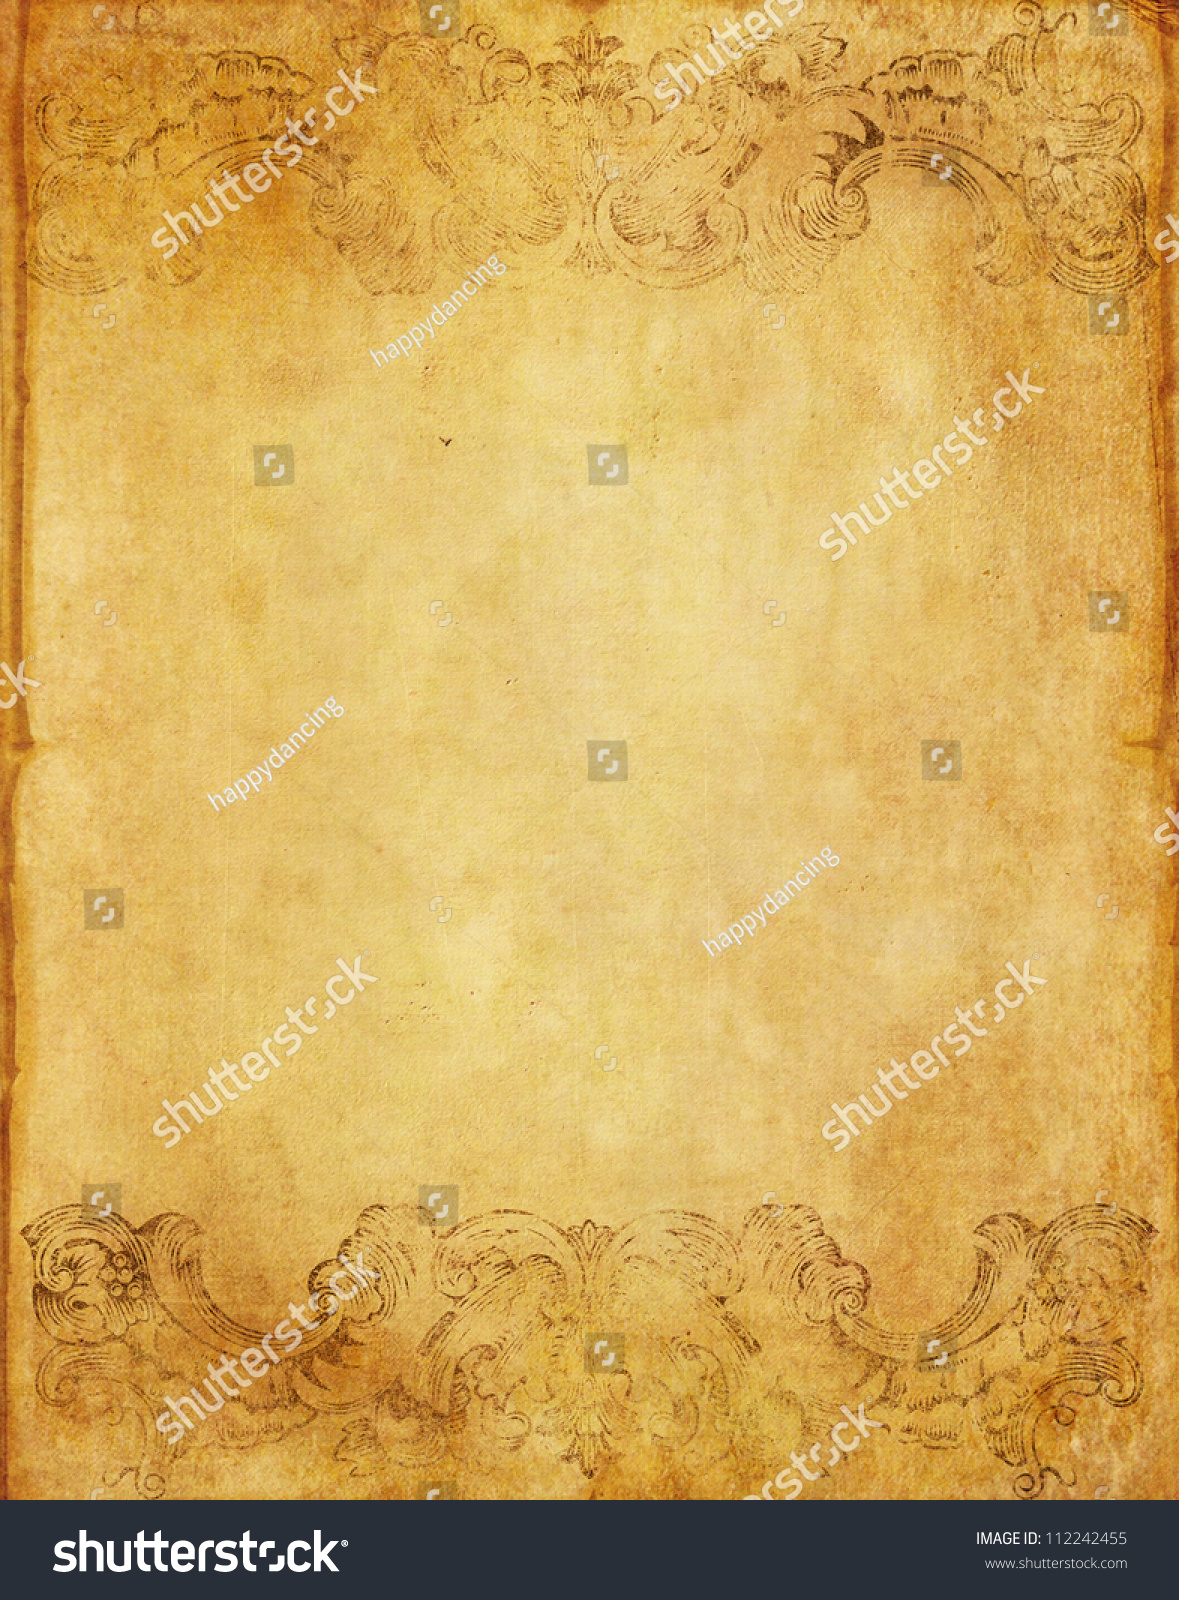 Vintage Book Cover Background ~ Old grunge paper background book vintage stock photo